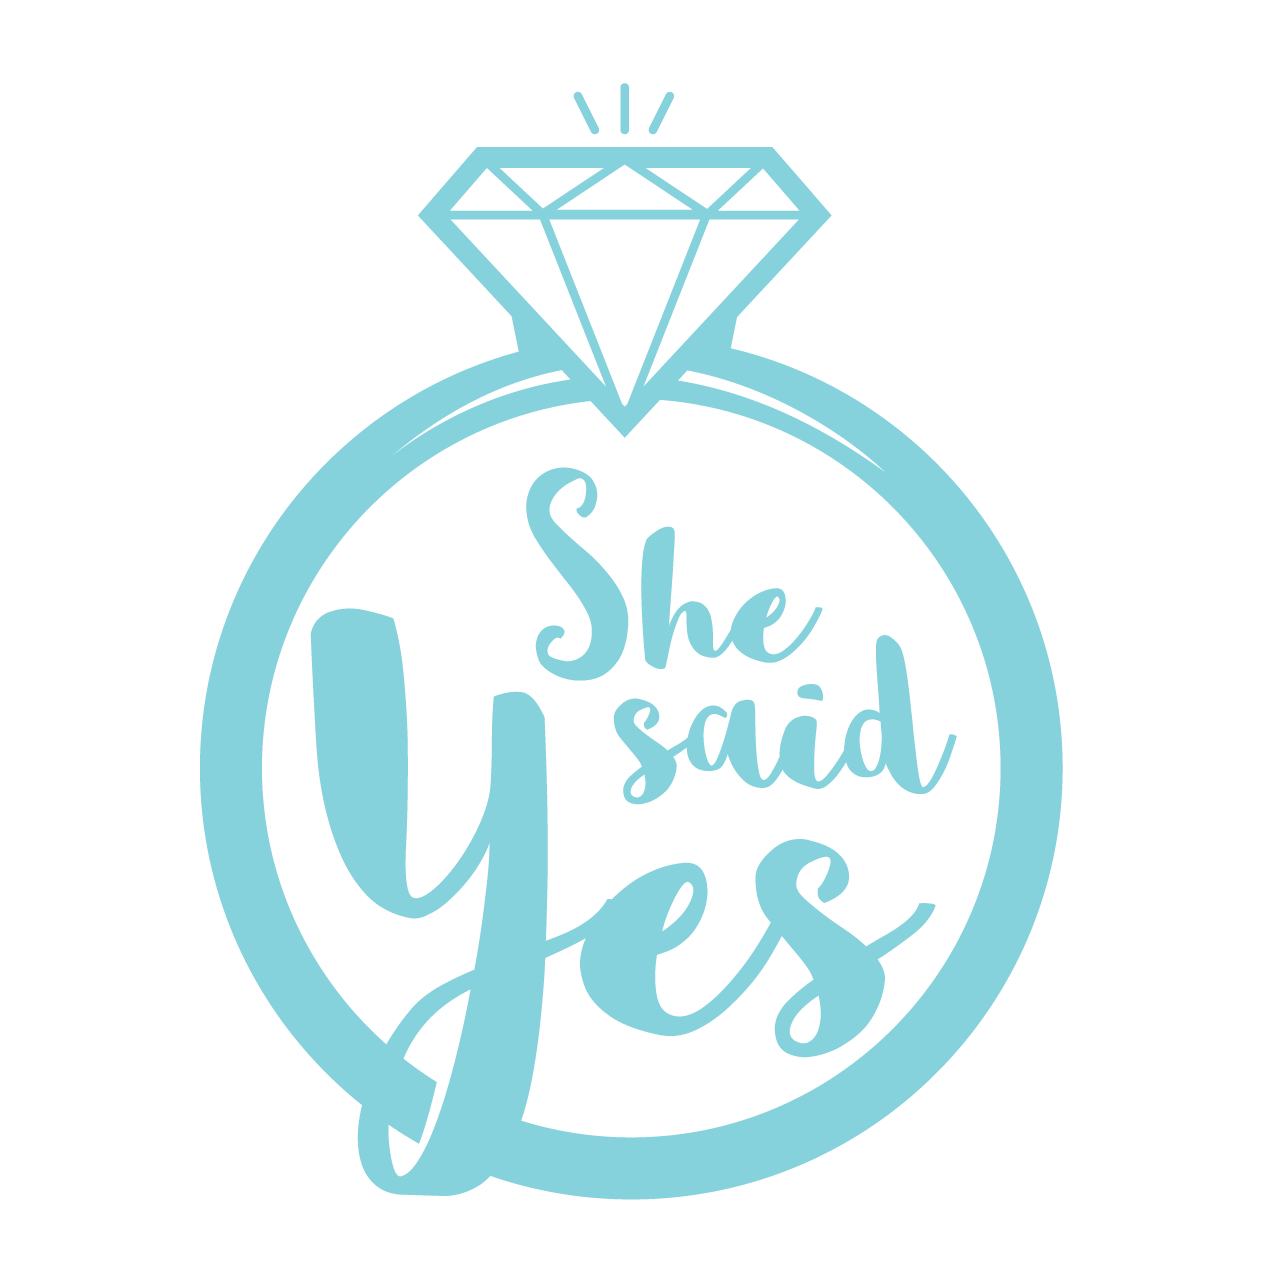 She Said Yes Images - Premium Invitation Template Design | Bliss Escape